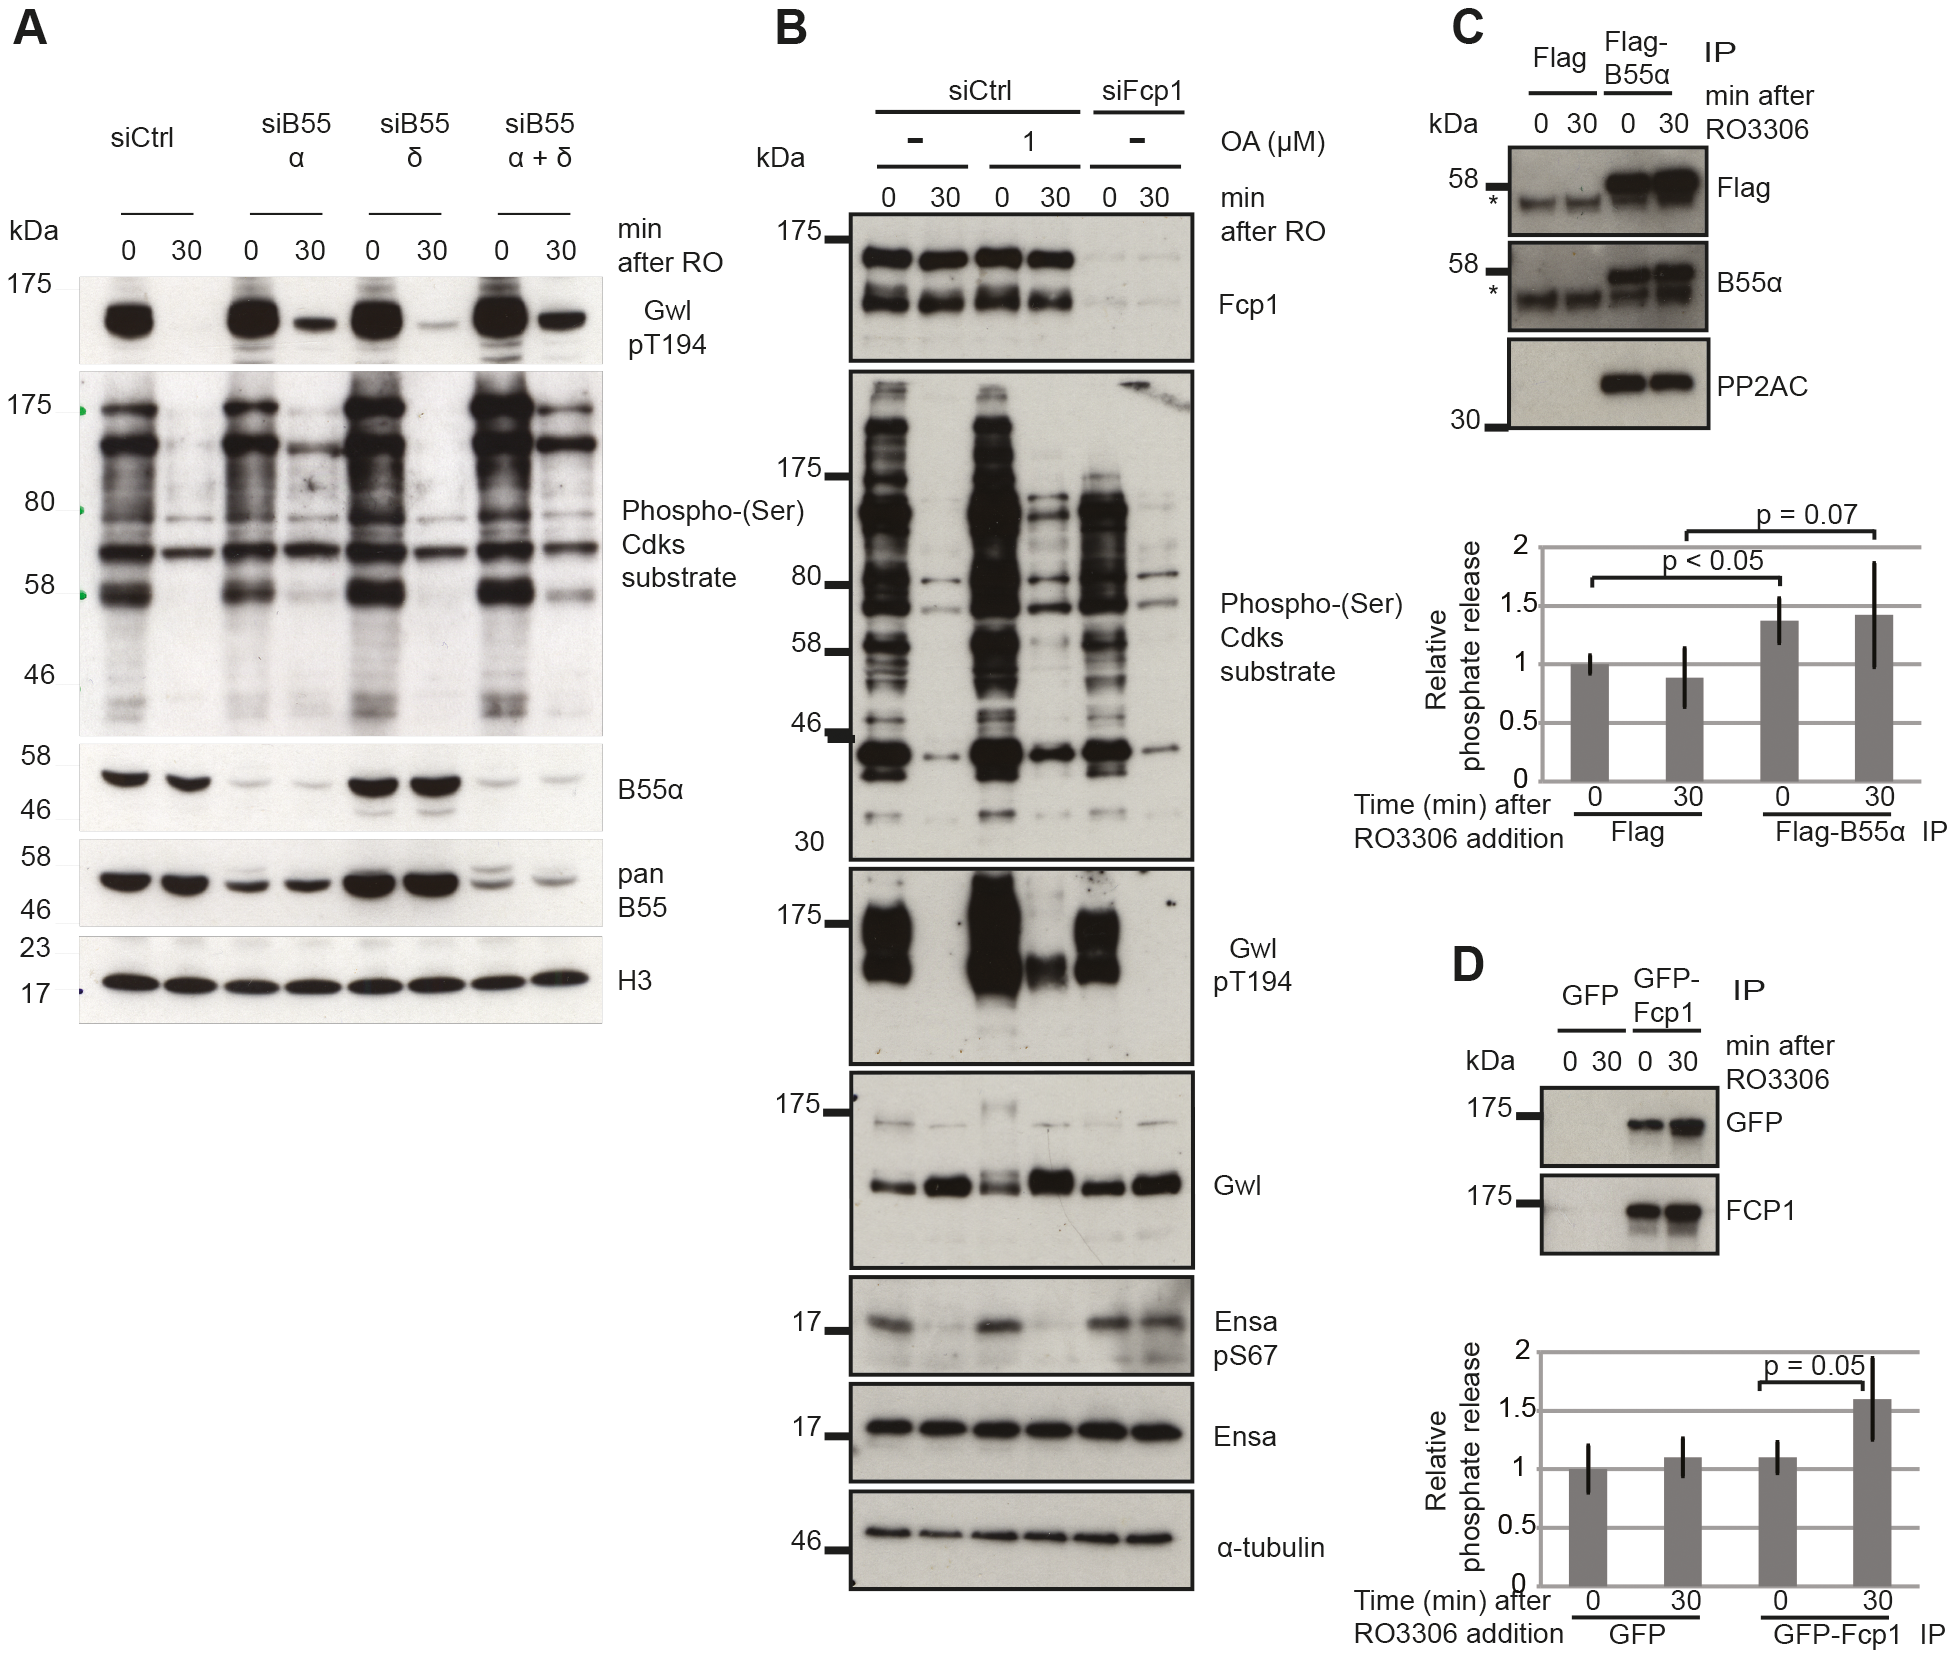 Identifying the phosphatases required for Gwl and Ensa/ARPP19.